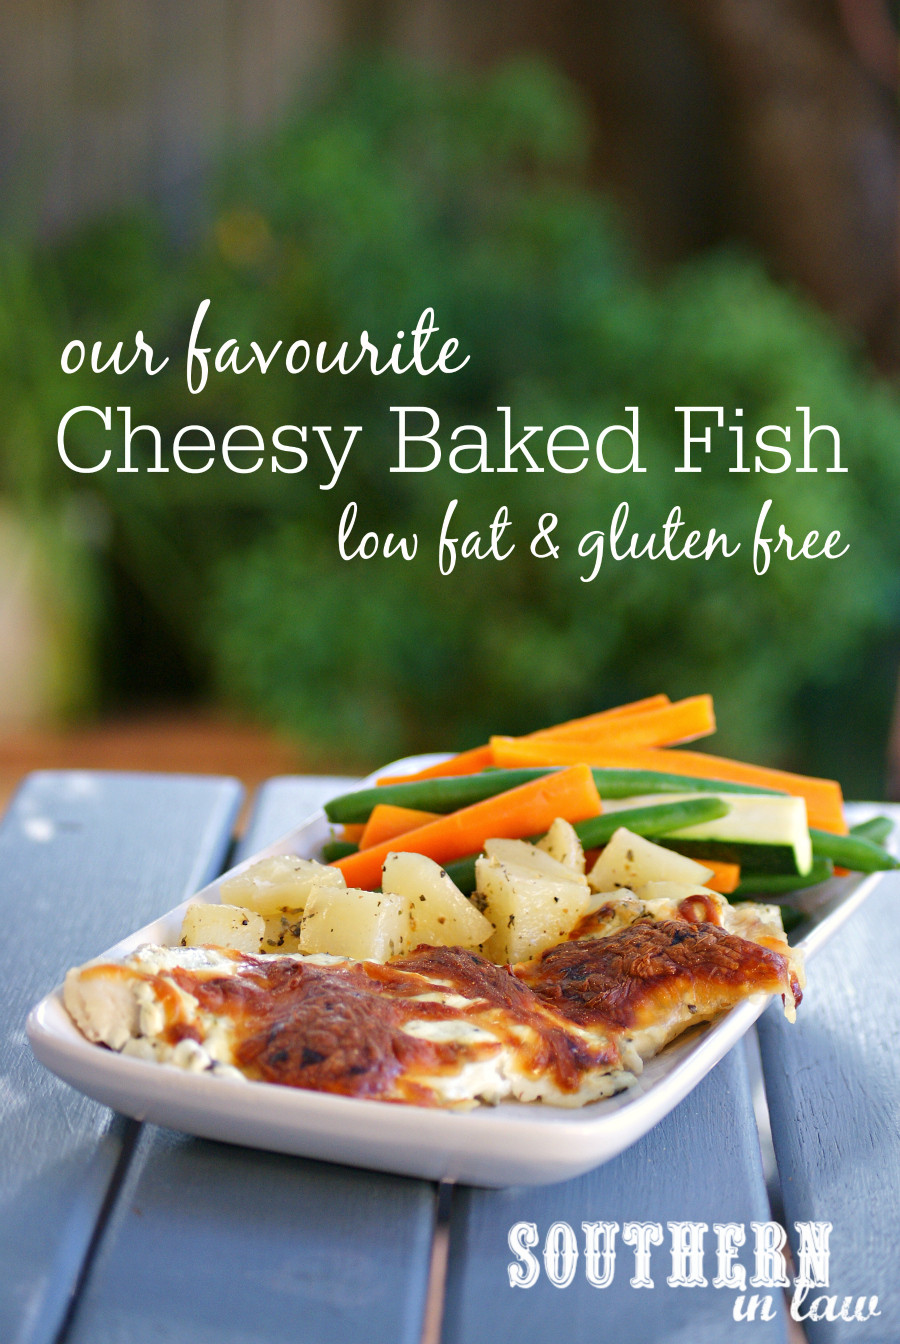 Healthy Recipes With Fish  Southern In Law Recipe Our Favourite Cheesy Baked Fish